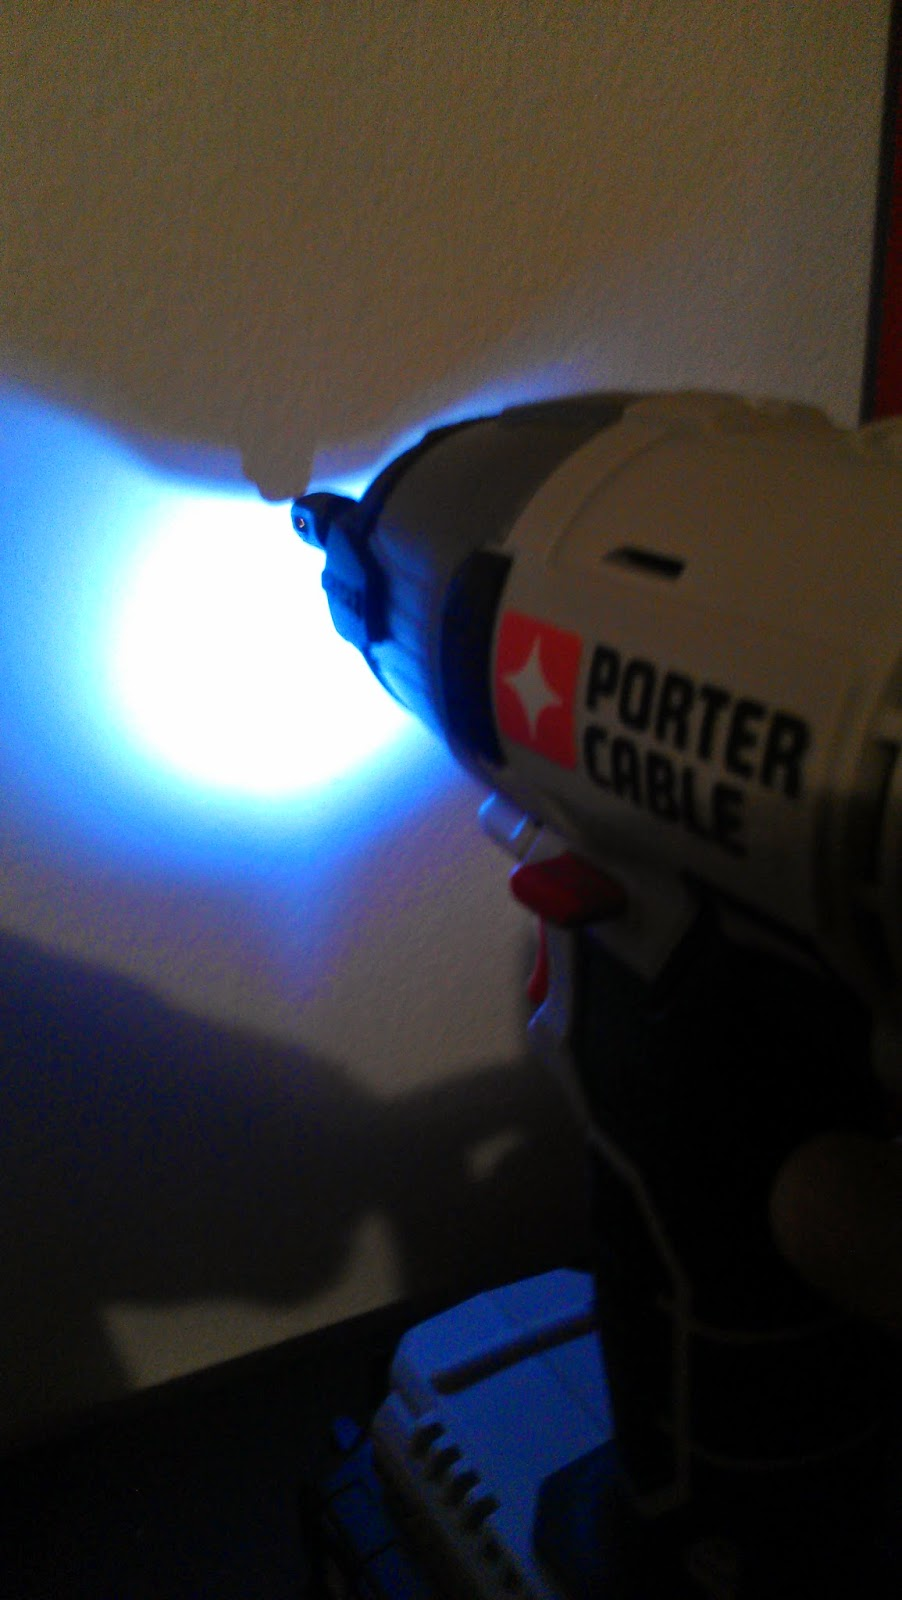 Porter cable 20v impact drill review light